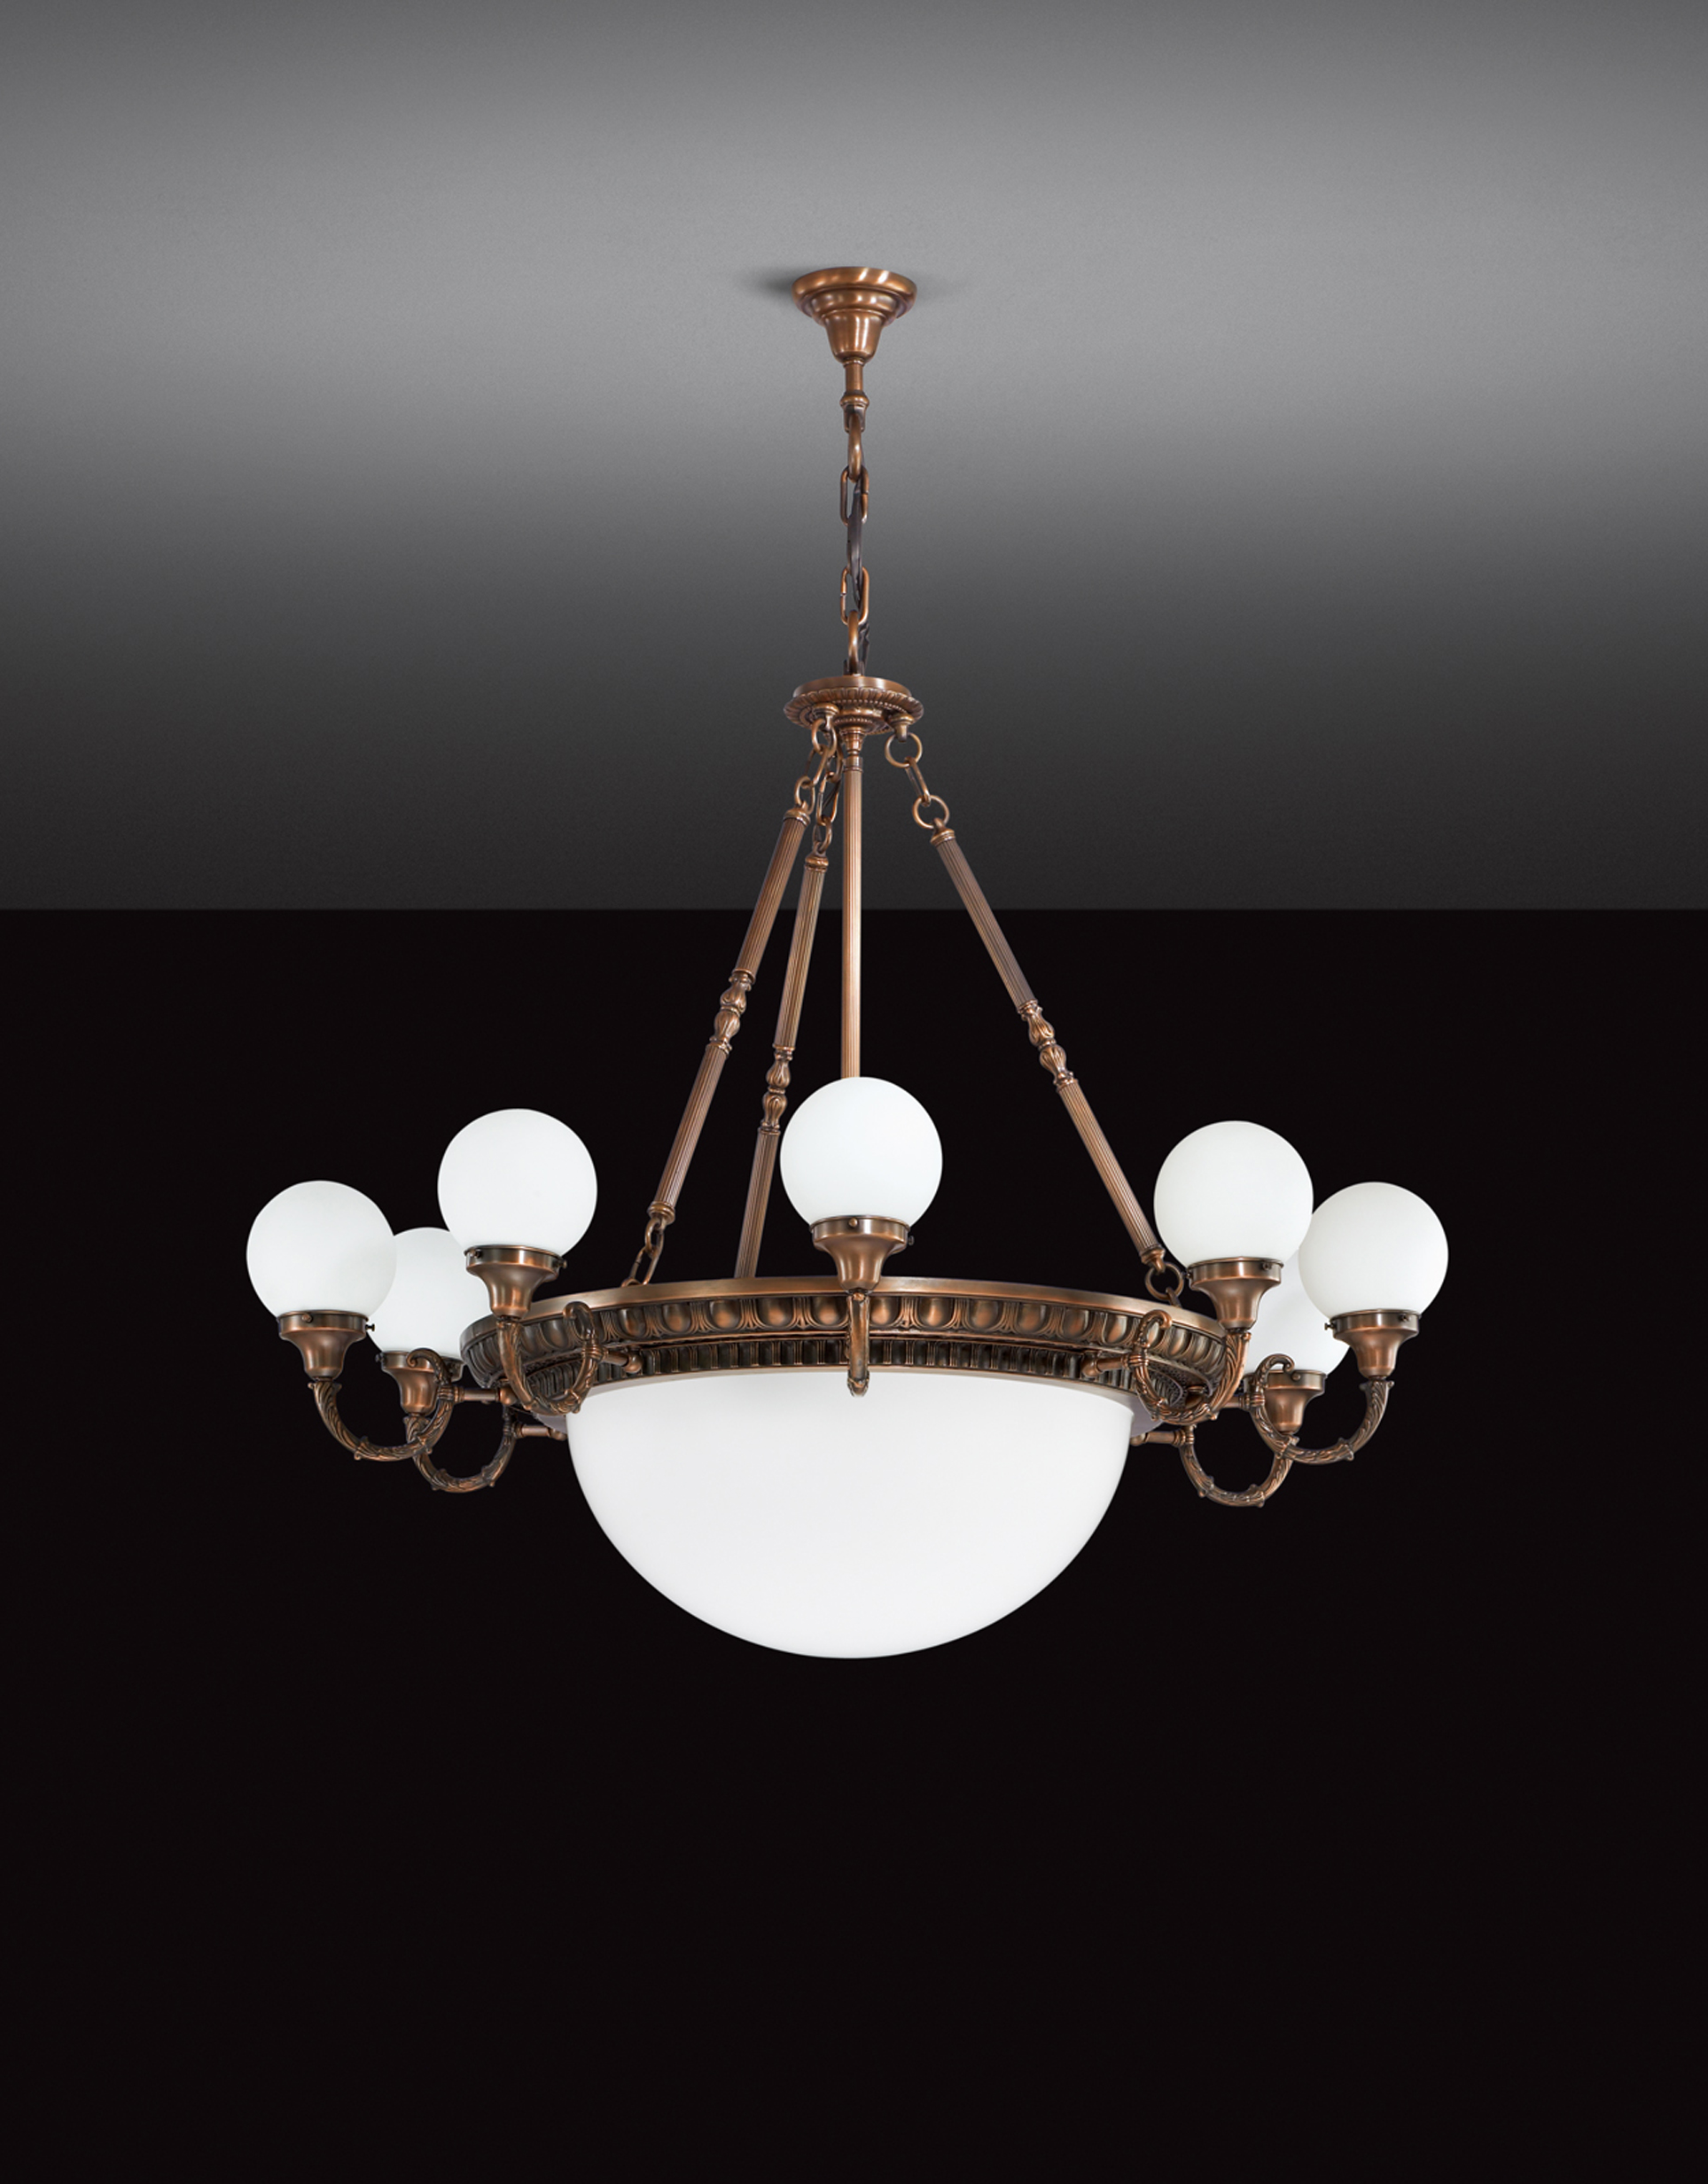 & Camelot™ Signature Pendant - OCL Architectural Lighting